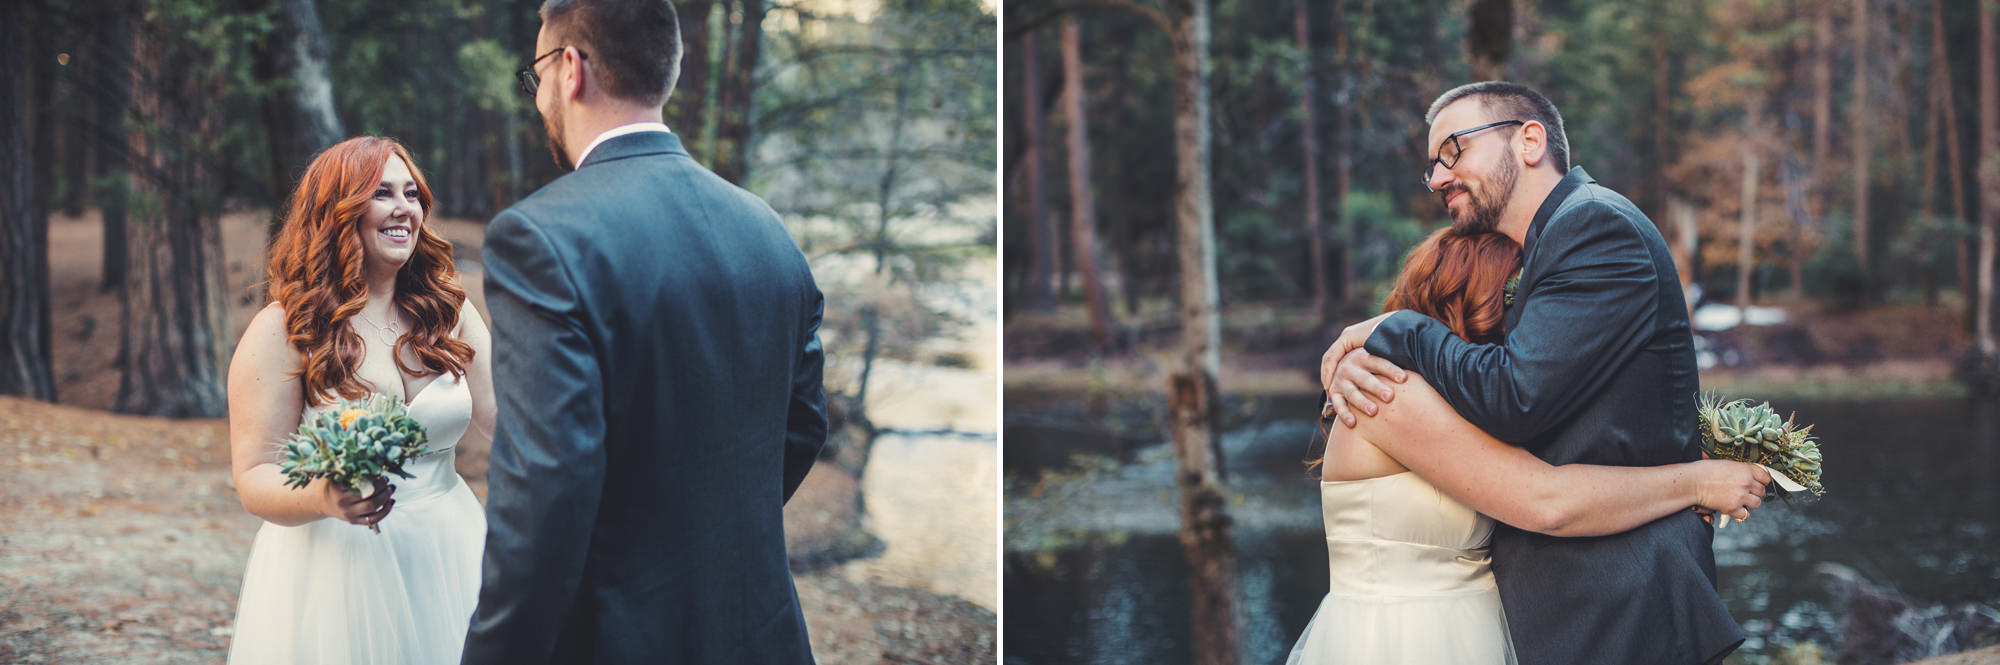 Yosemite wedding ©Anne-Claire Brun 50